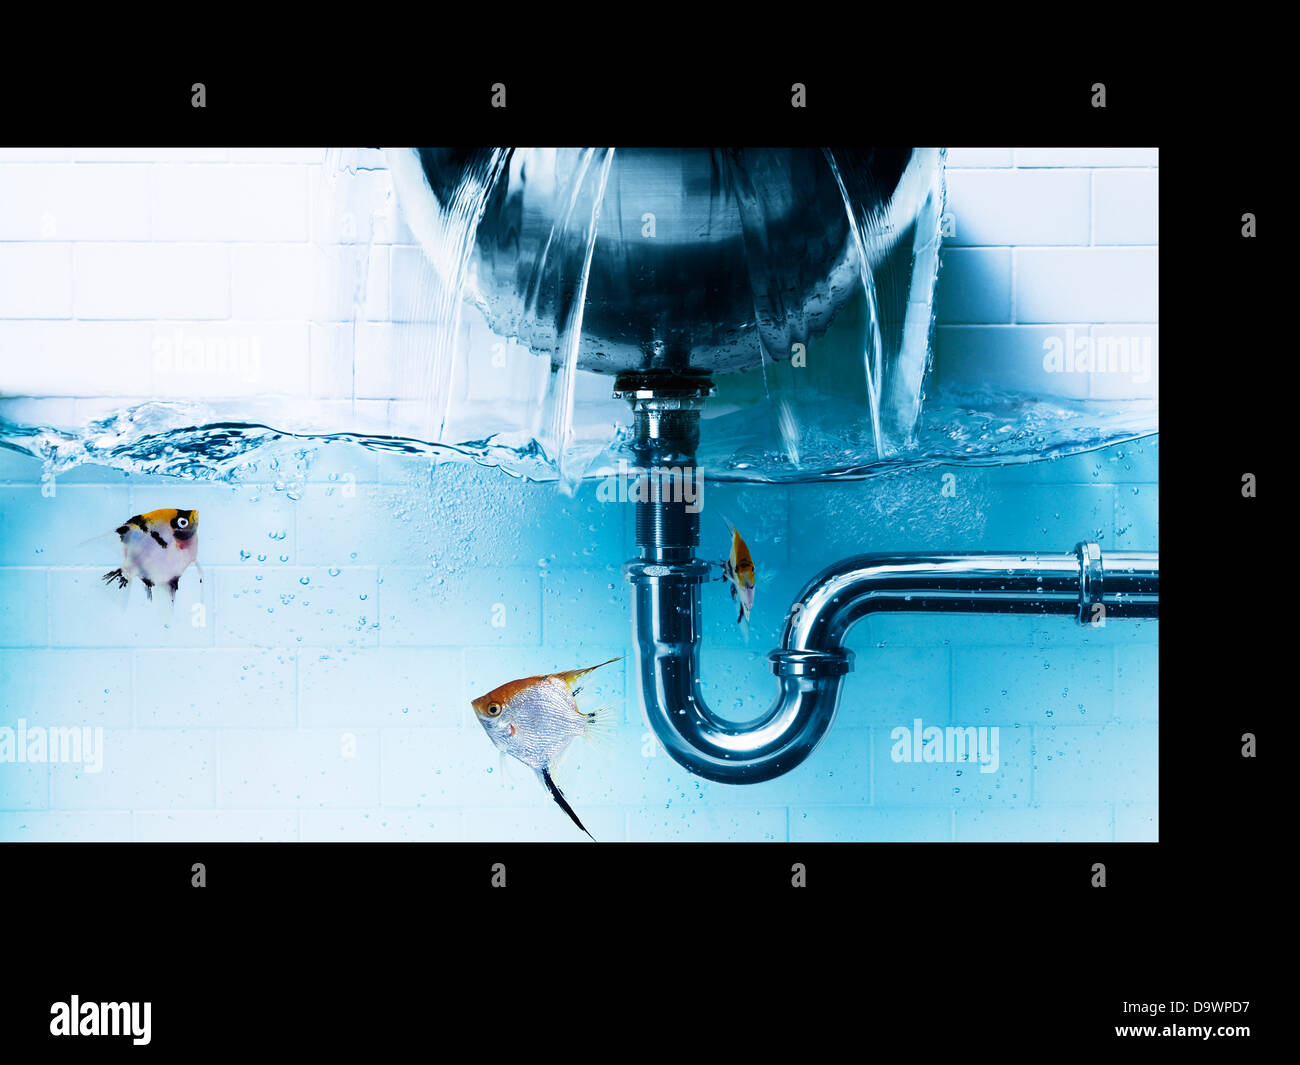 bathroom leak - Stock Image